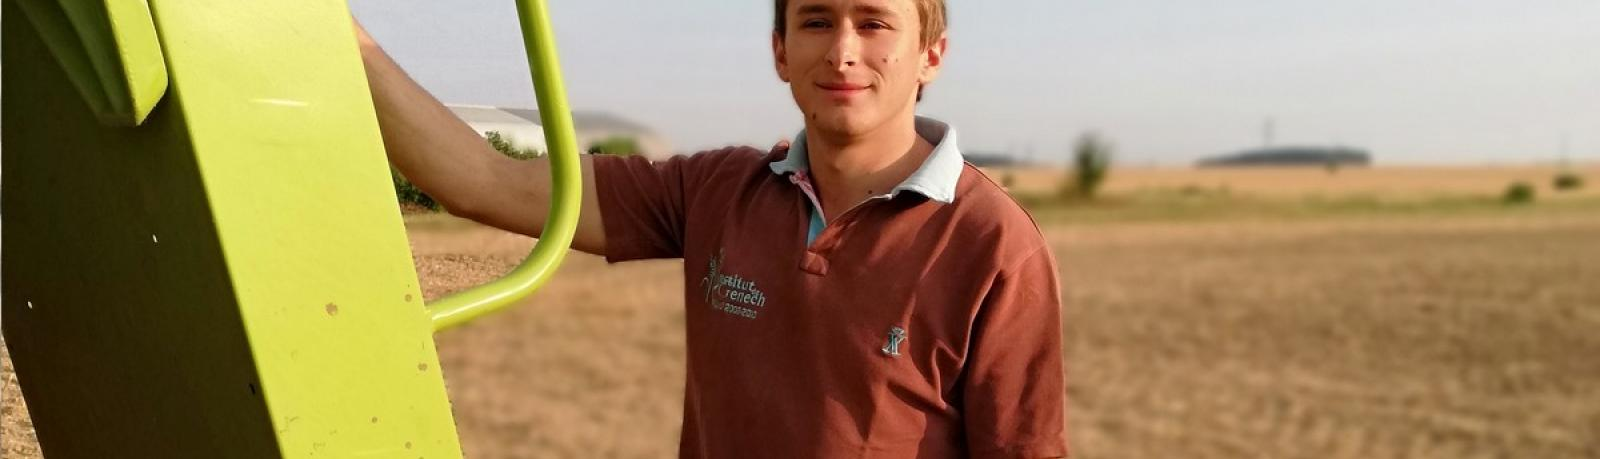 Vincent Bailly, 27 ans, agriculteur, Guyancourt (Yvelines)